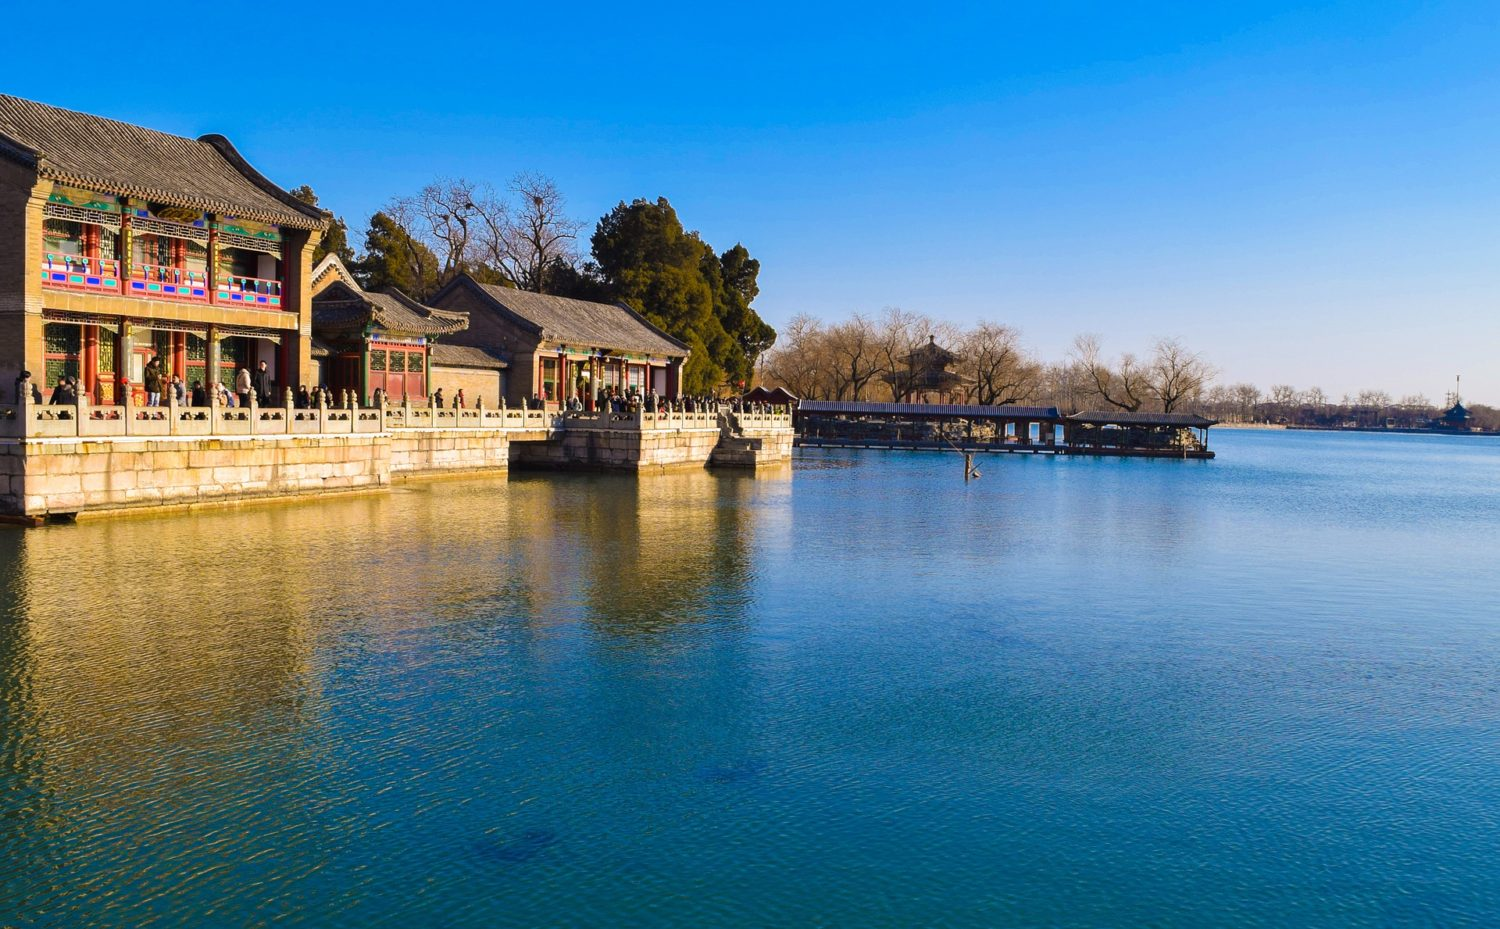 Kunming Lake - the central lake on the grounds of the Summer Palace in Beijing, China